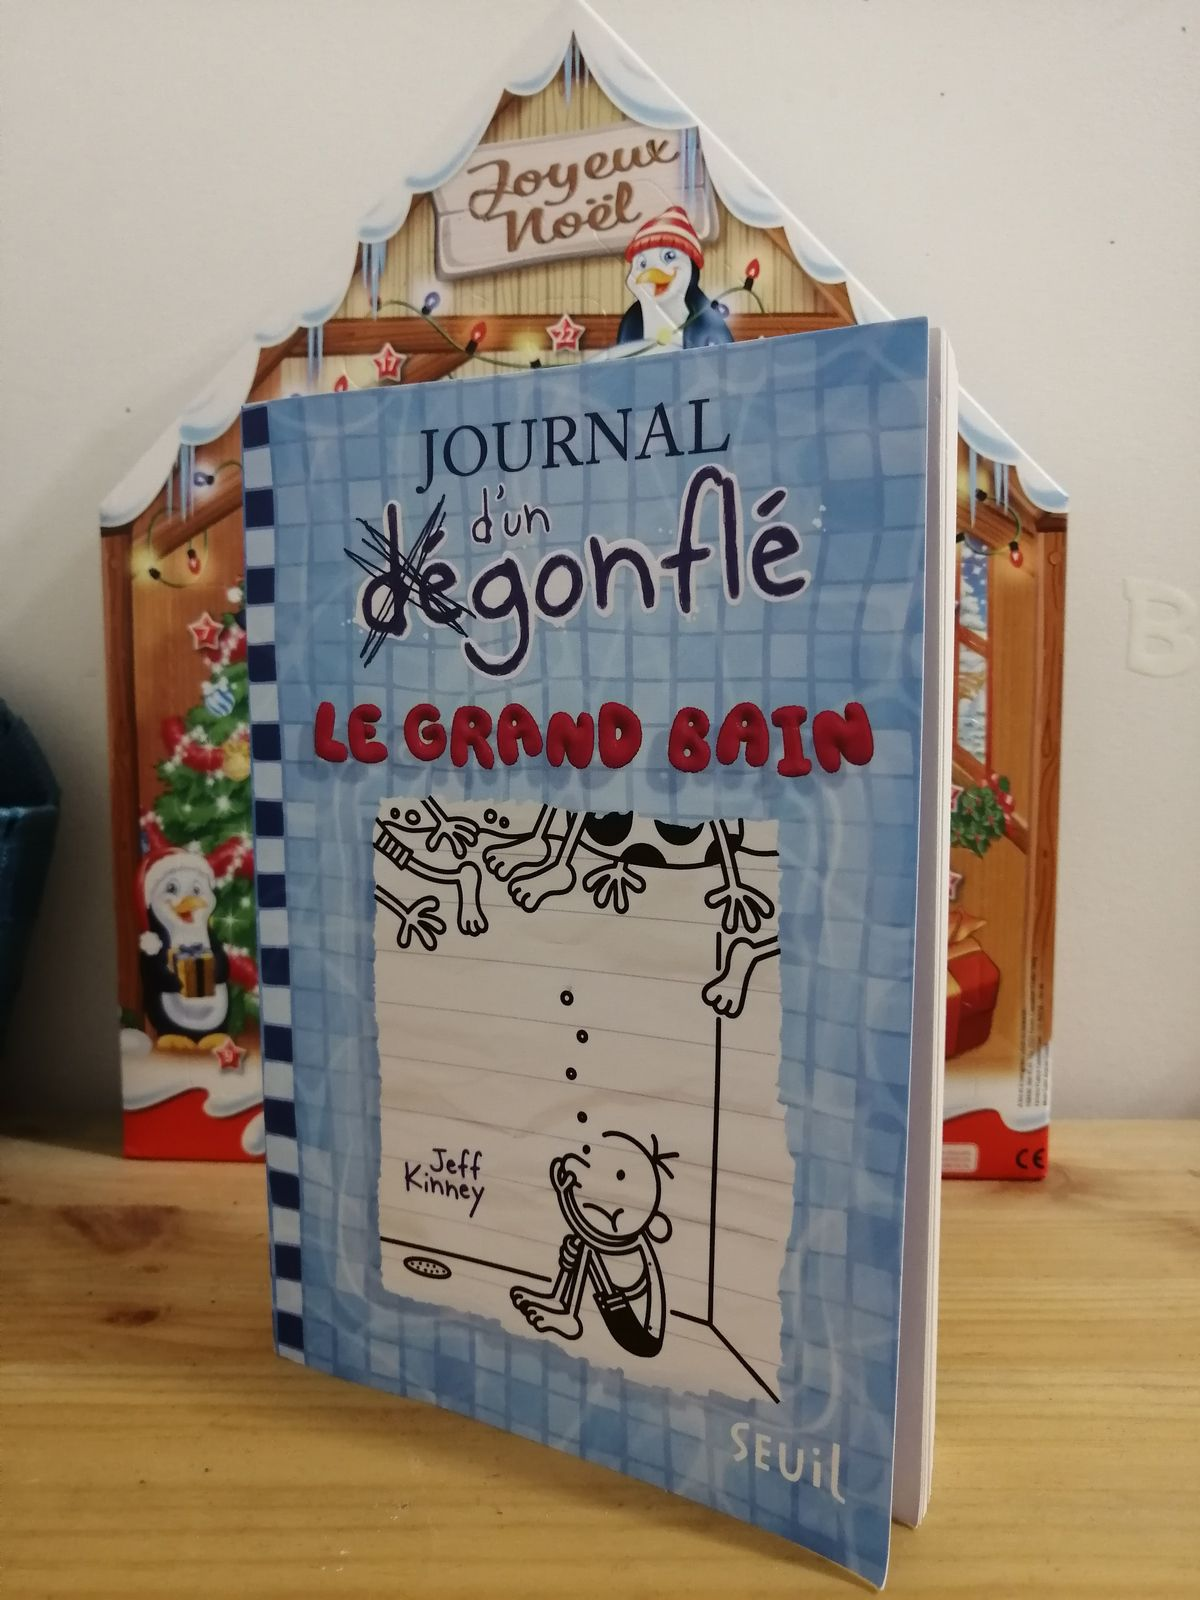 LE JOURNAL D'UN DEGONFLE de Jeff Kinney - Le Grand Bain